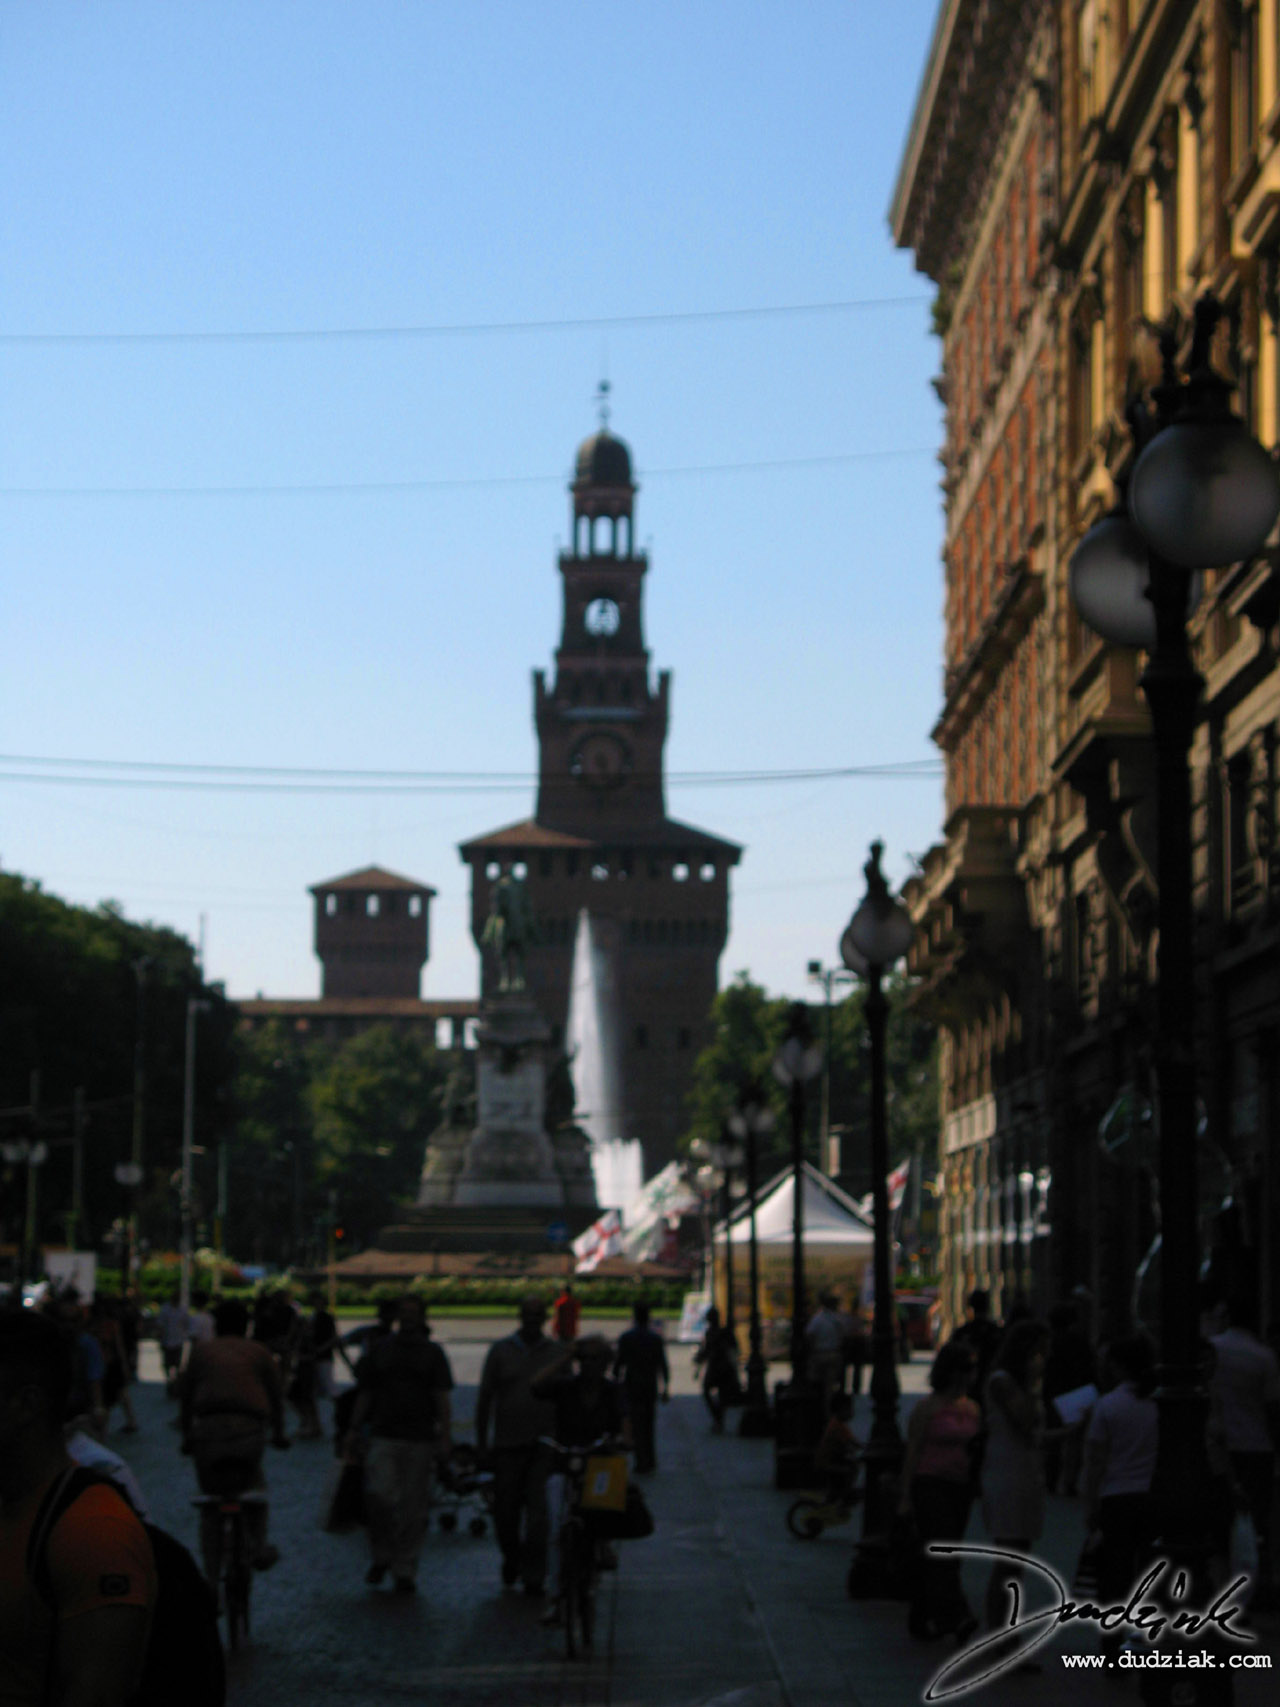 Picture of the Southeast enterence to Castle Sforzesco in Milan, Italy